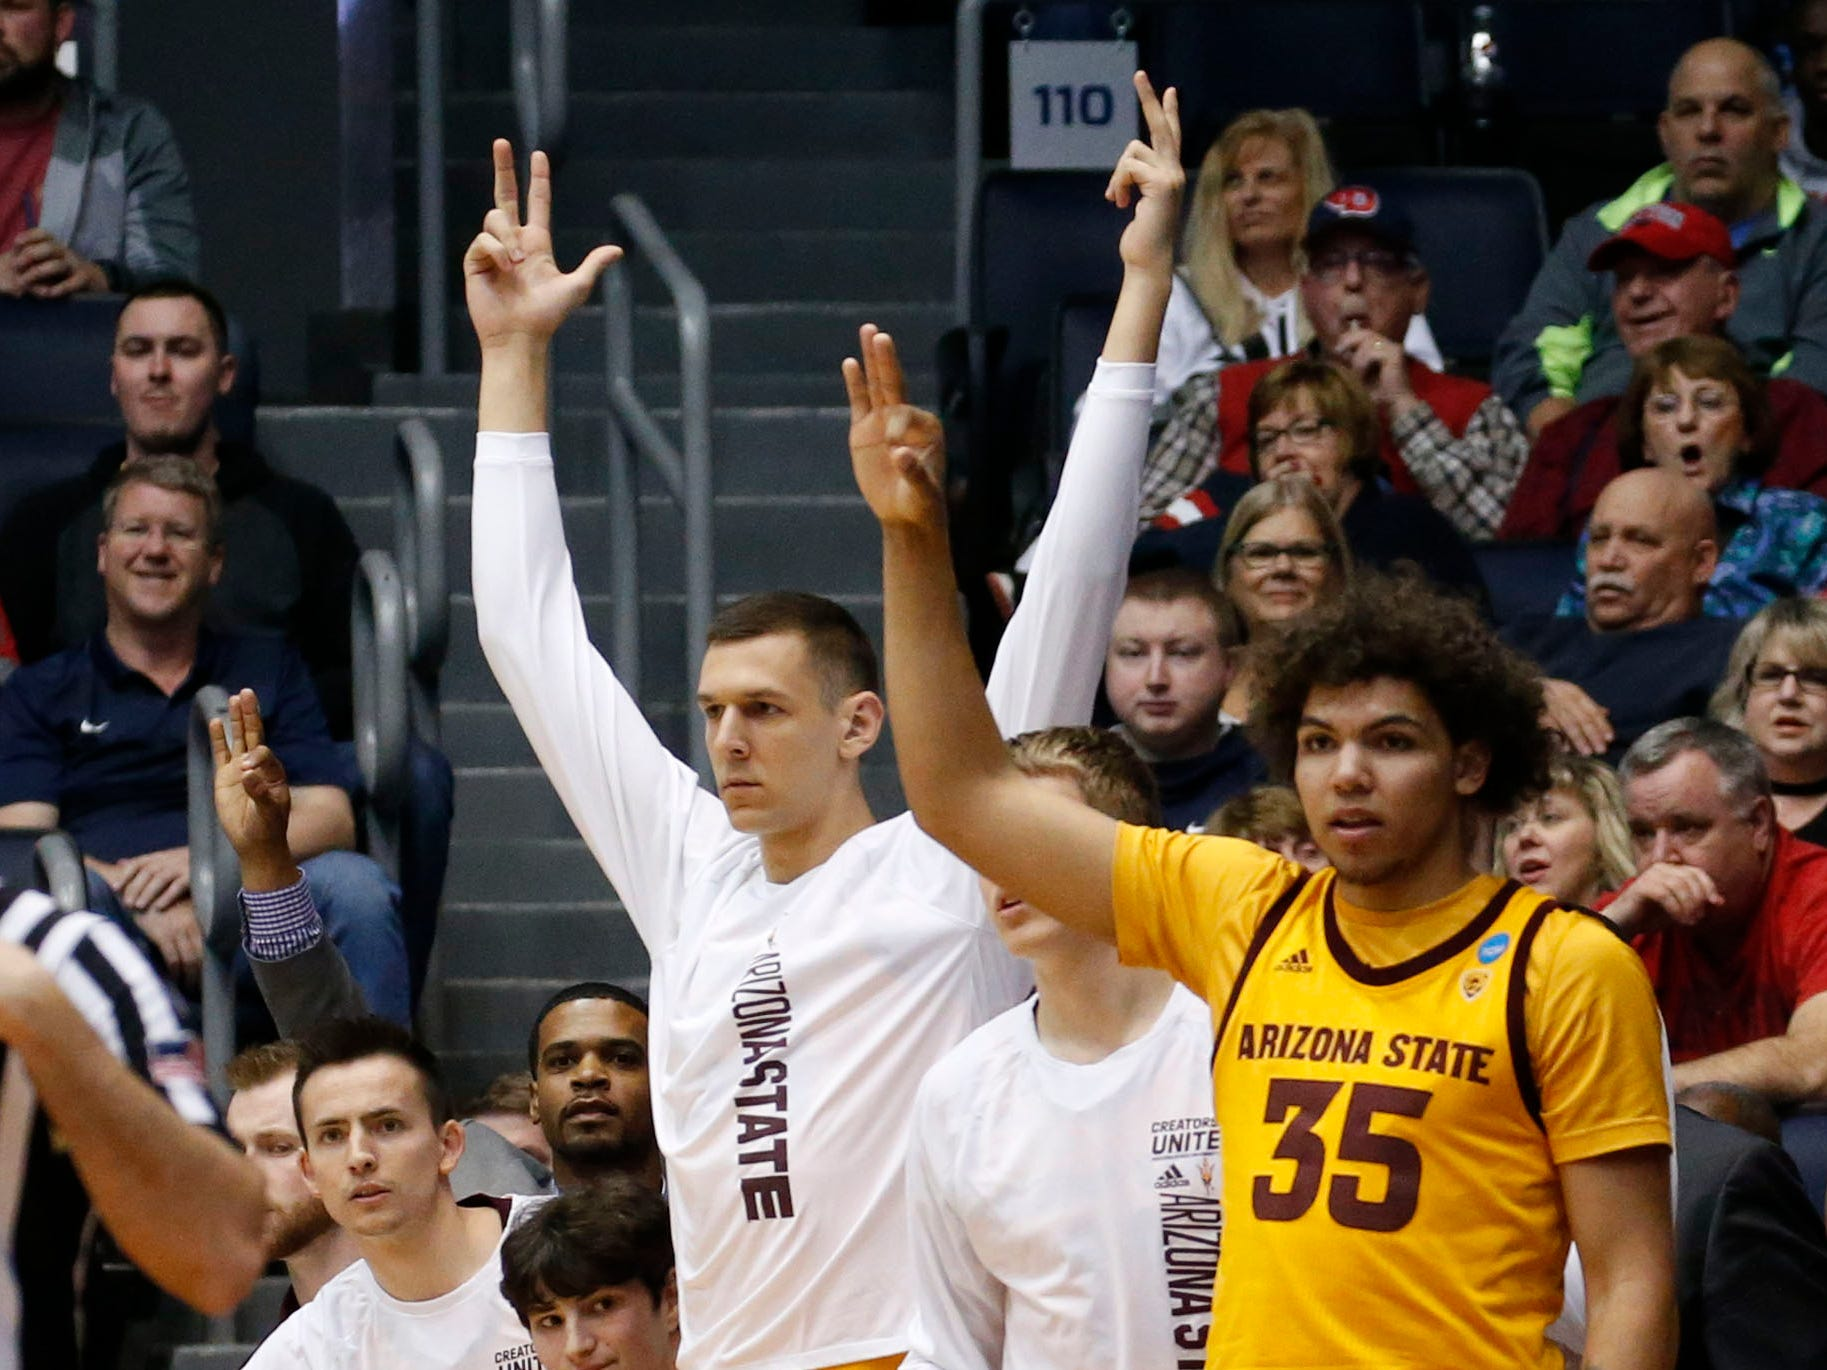 Mar 20, 2019; Dayton, OH, USA; Arizona State Sun Devils bench reacts to play against the St. John's Red Storm in the First Four of the 2019 NCAA Tournament at Dayton Arena. Mandatory Credit: Brian Spurlock-USA TODAY Sports